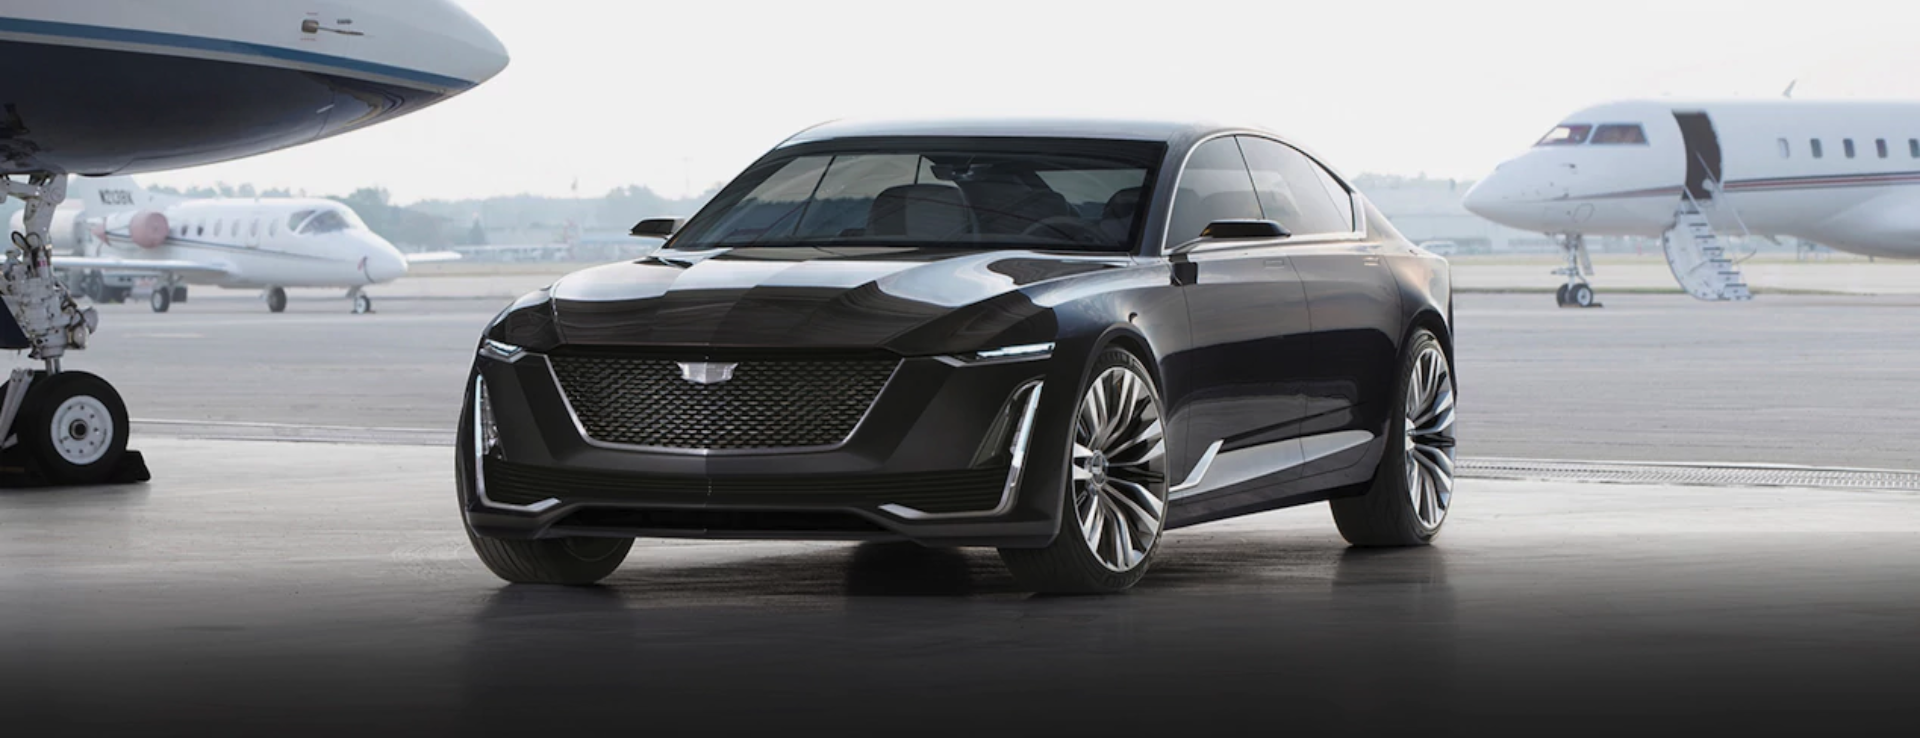 31 New 2019 Cadillac Ct5 Spesification with 2019 Cadillac Ct5